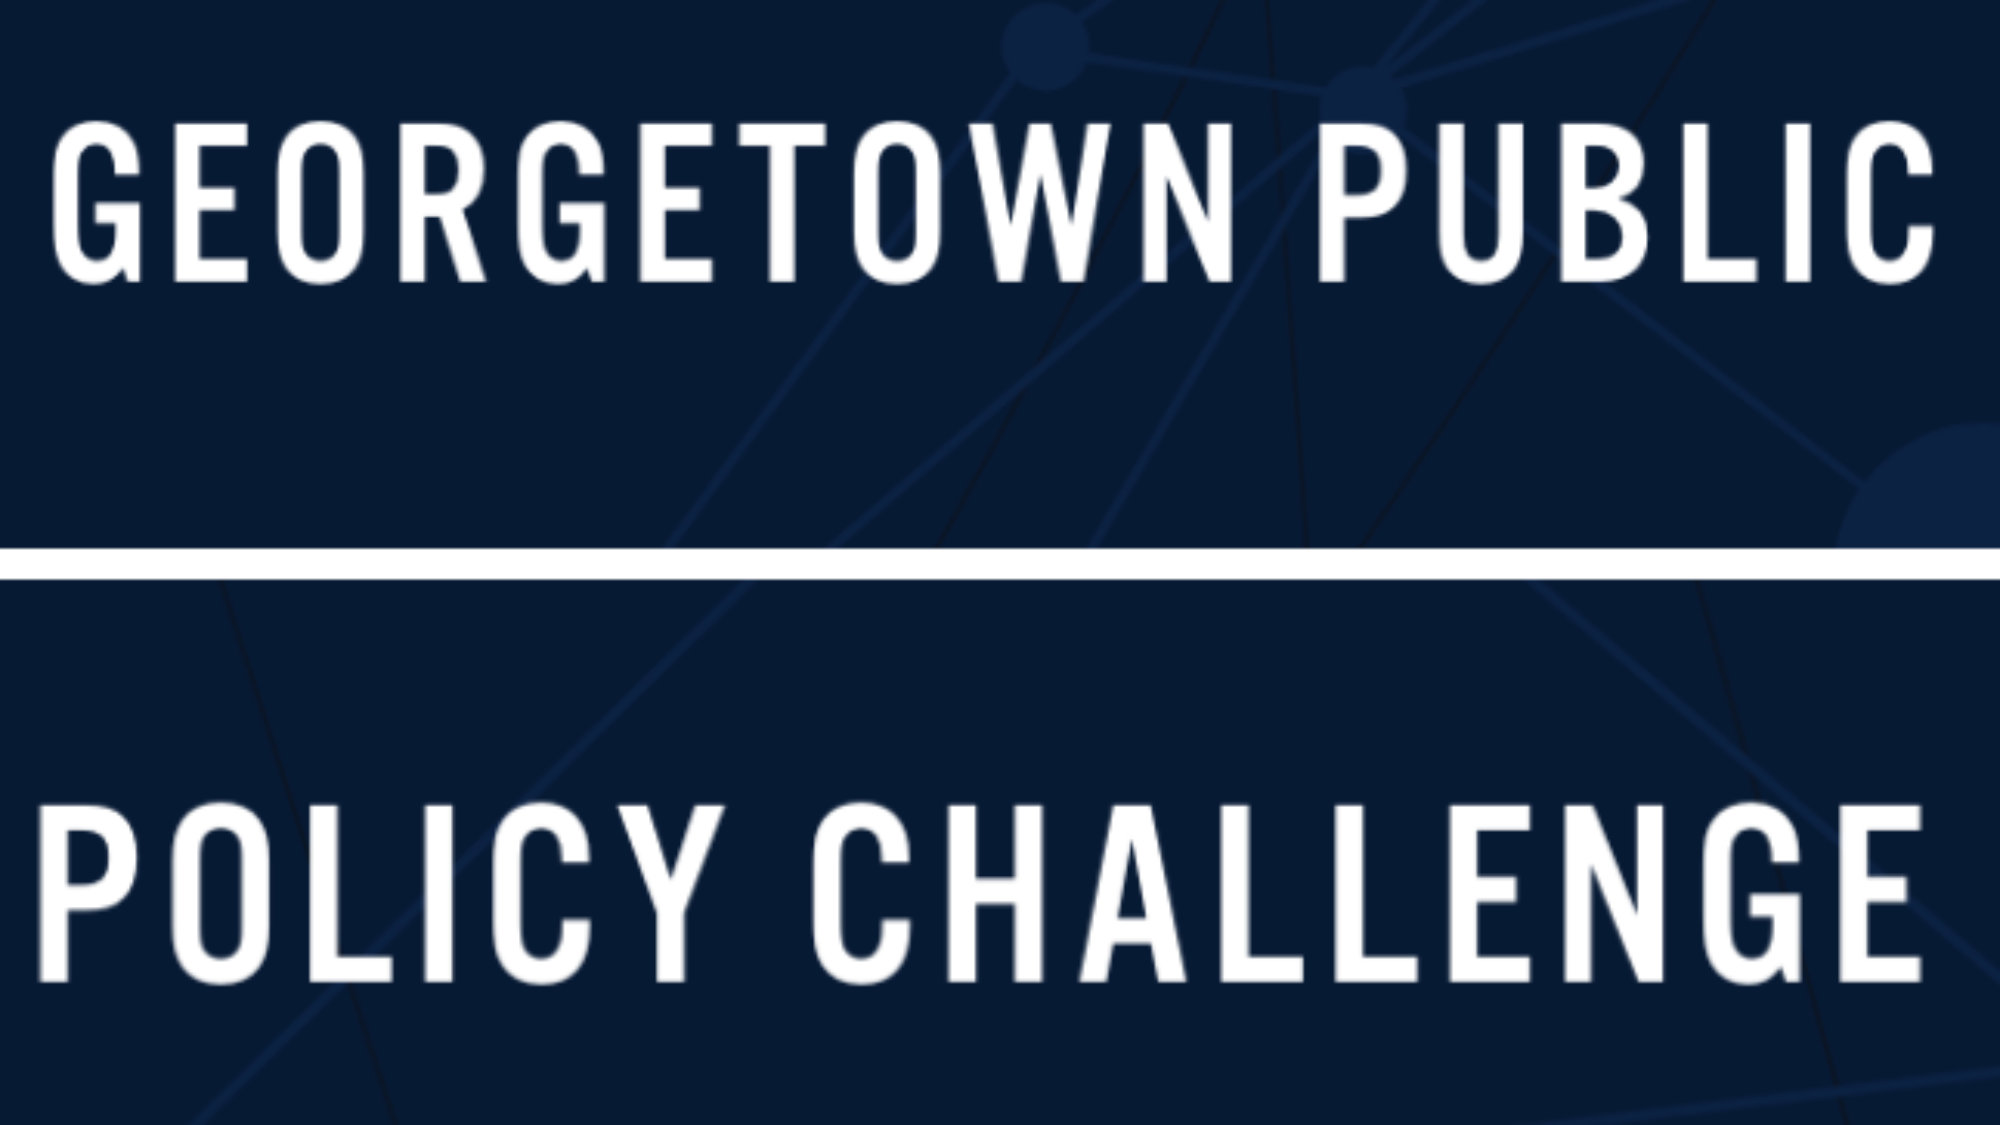 Georgetown Public Policy Challenge